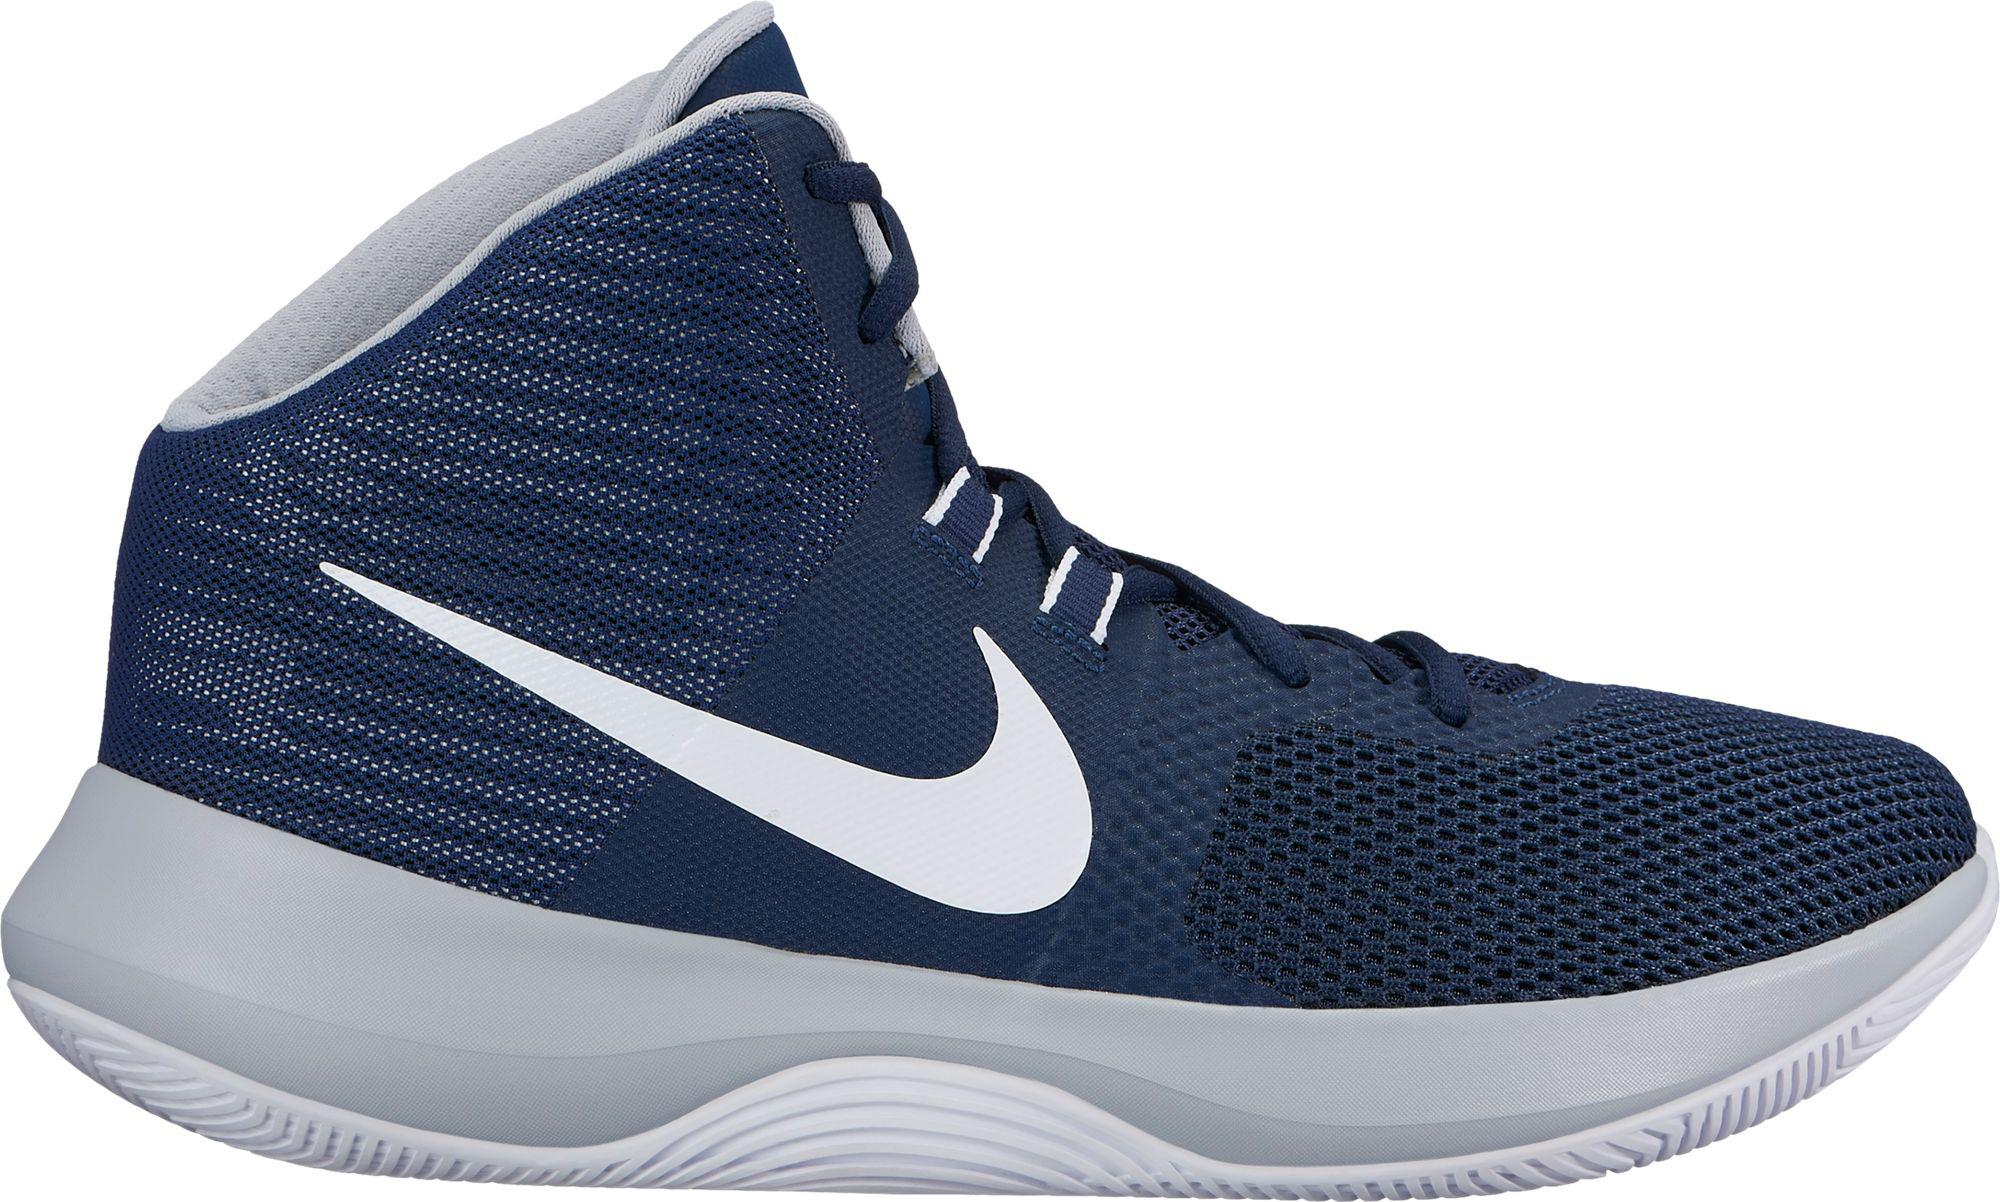 5a52ab9f50779c ... new arrivals nike blue air precision basketball shoes for men lyst  68a0d 704a2